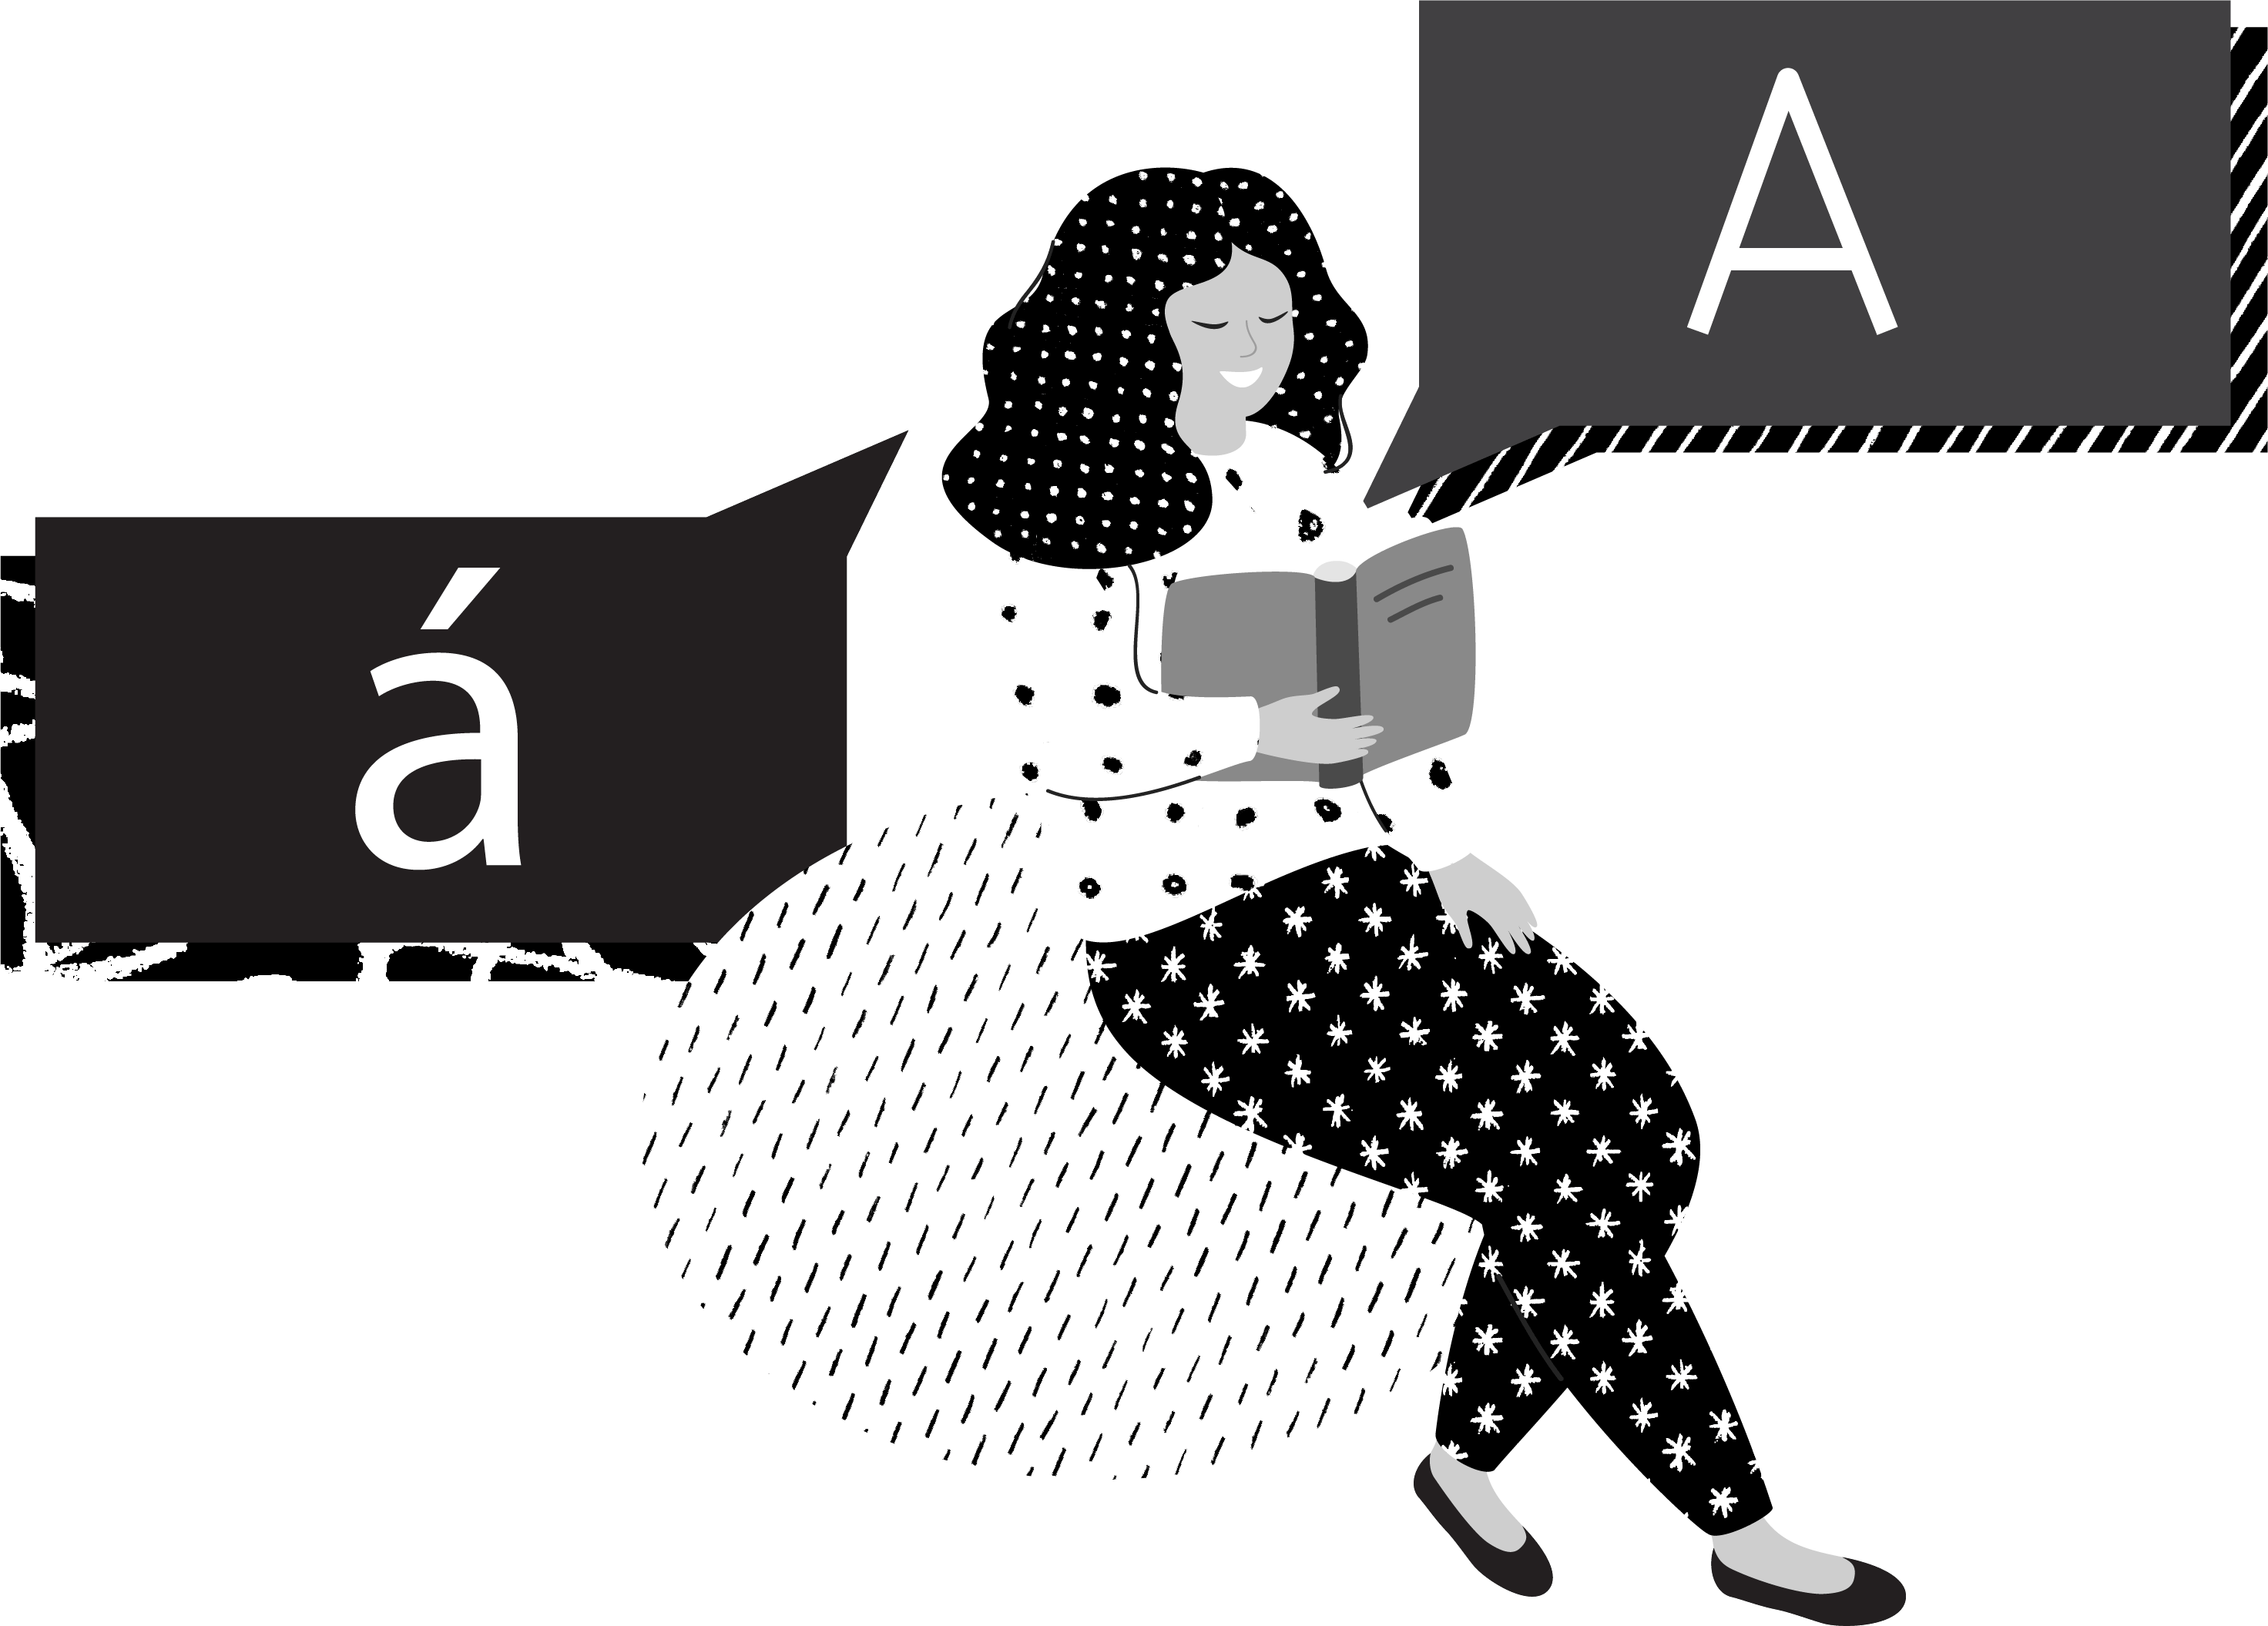 girl with two speech bubbles, one an 'A', the other an accented 'a'.